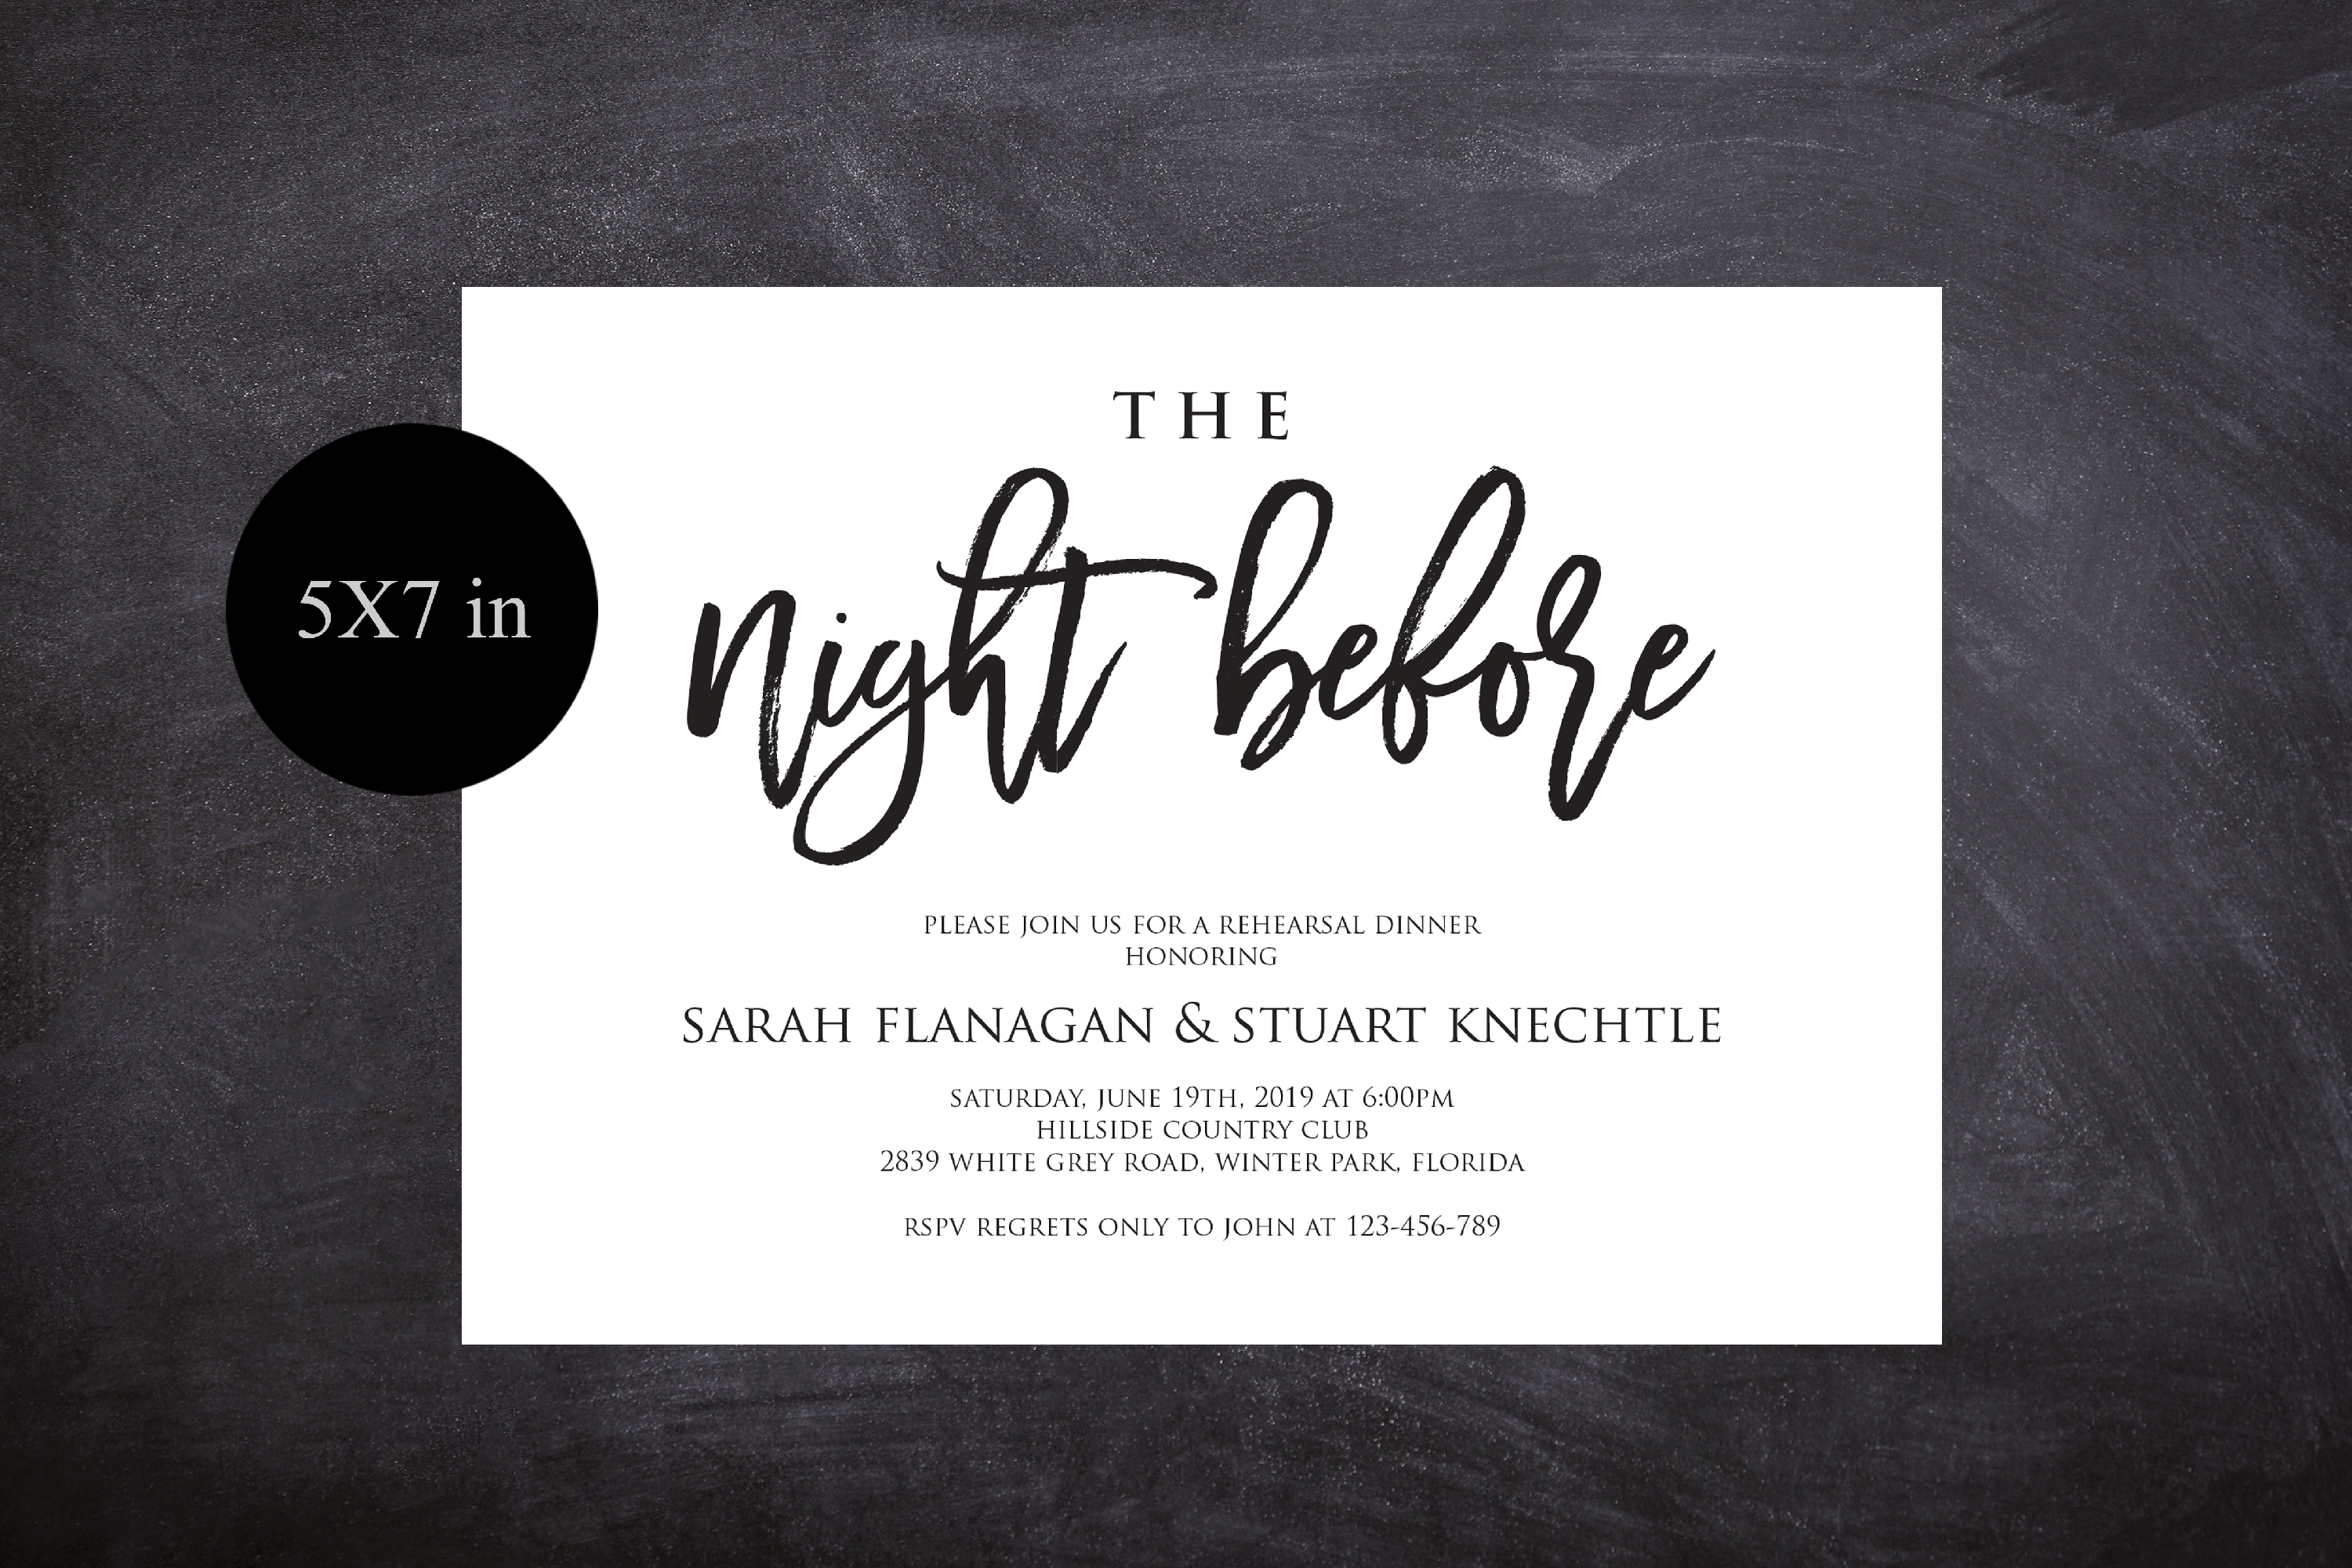 The Night Before Rehearsal Dinner Invitation Template Modern example image 3